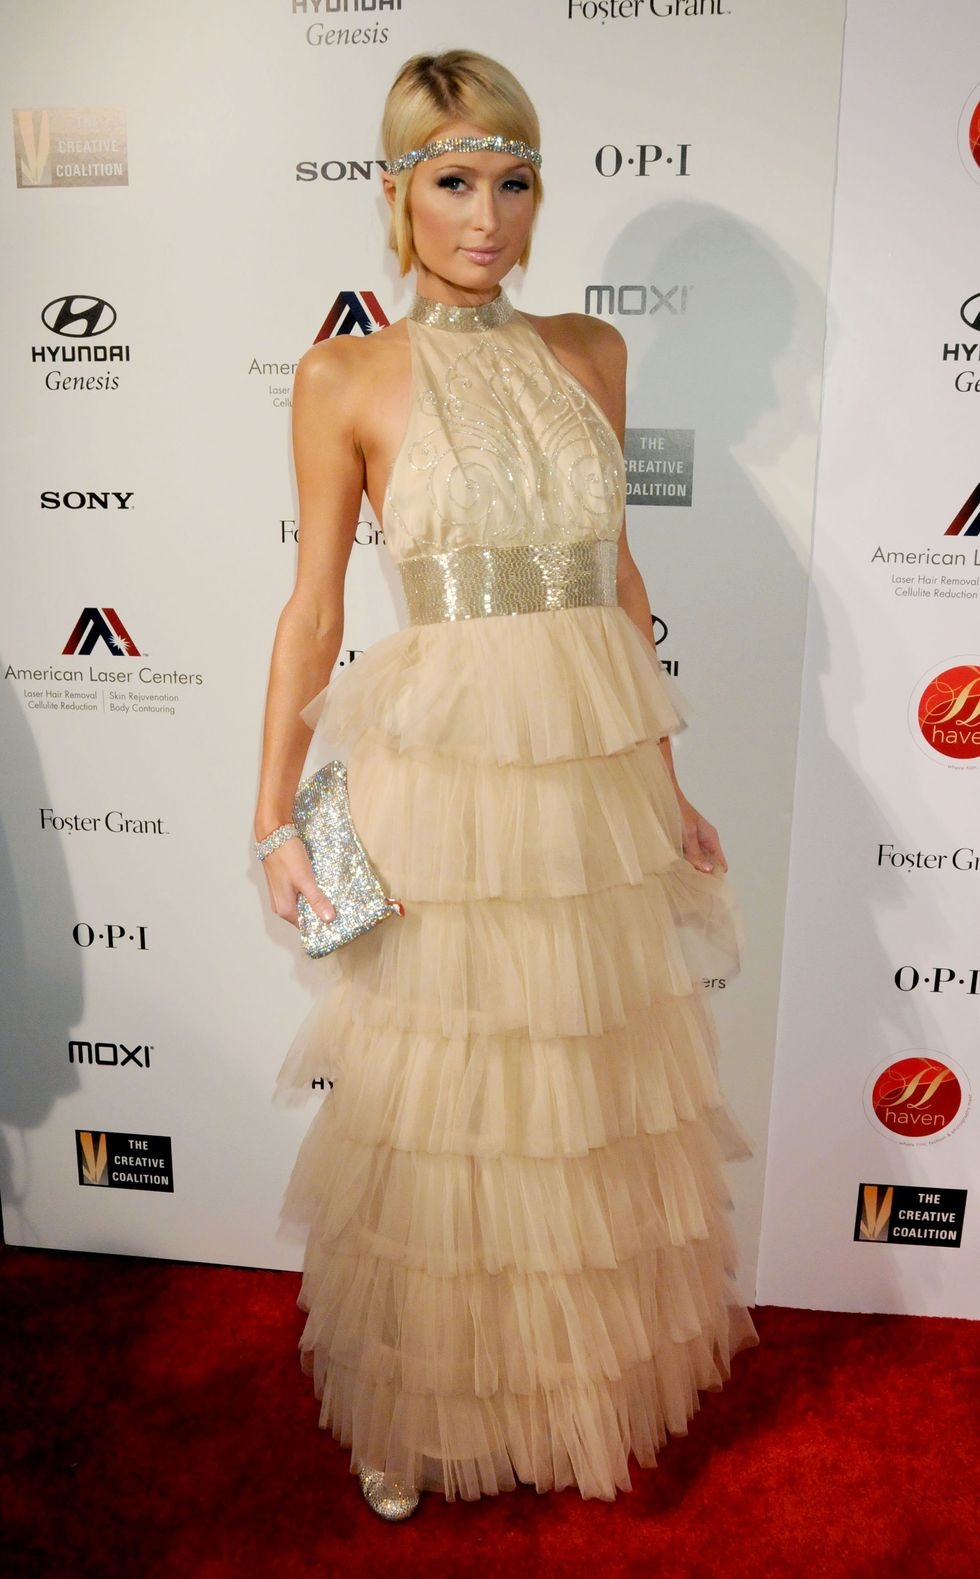 paris-hilton-haven-evening-of-fashion-in-beverly-hills-04